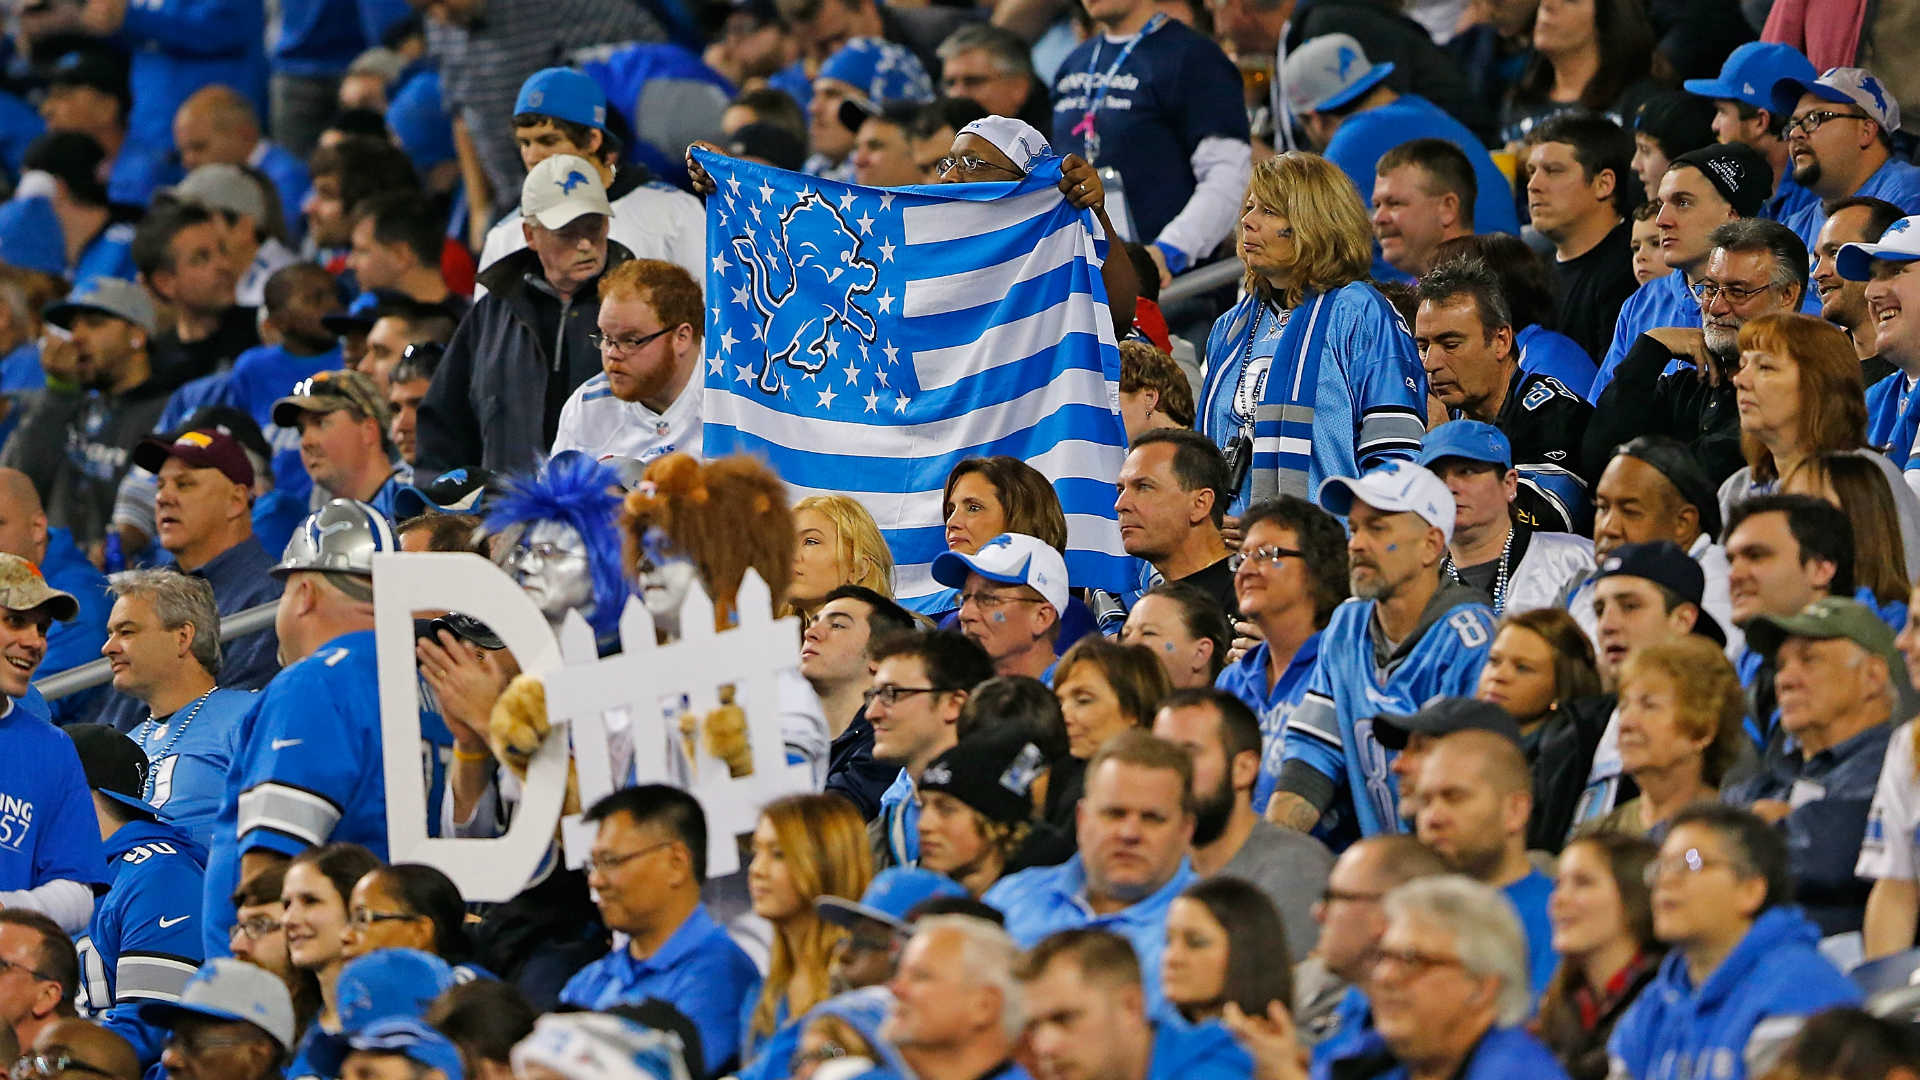 Lions fan who posted racist message no longer a season ticket holder